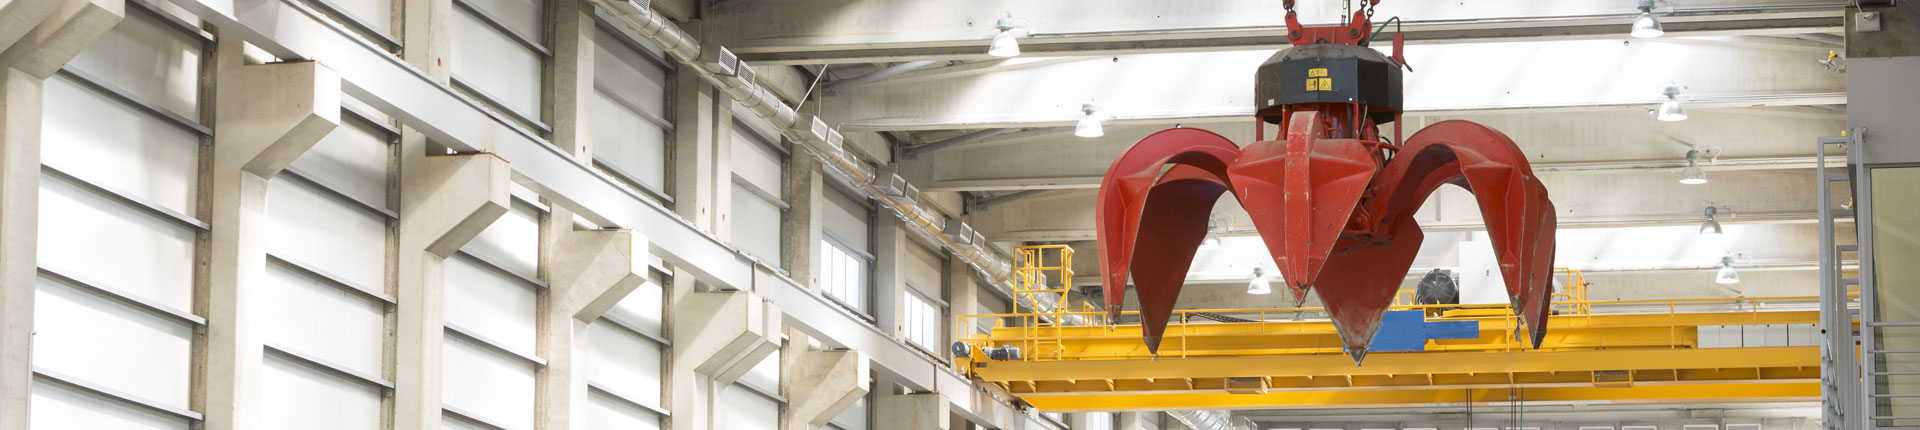 Crane at an incineration plant